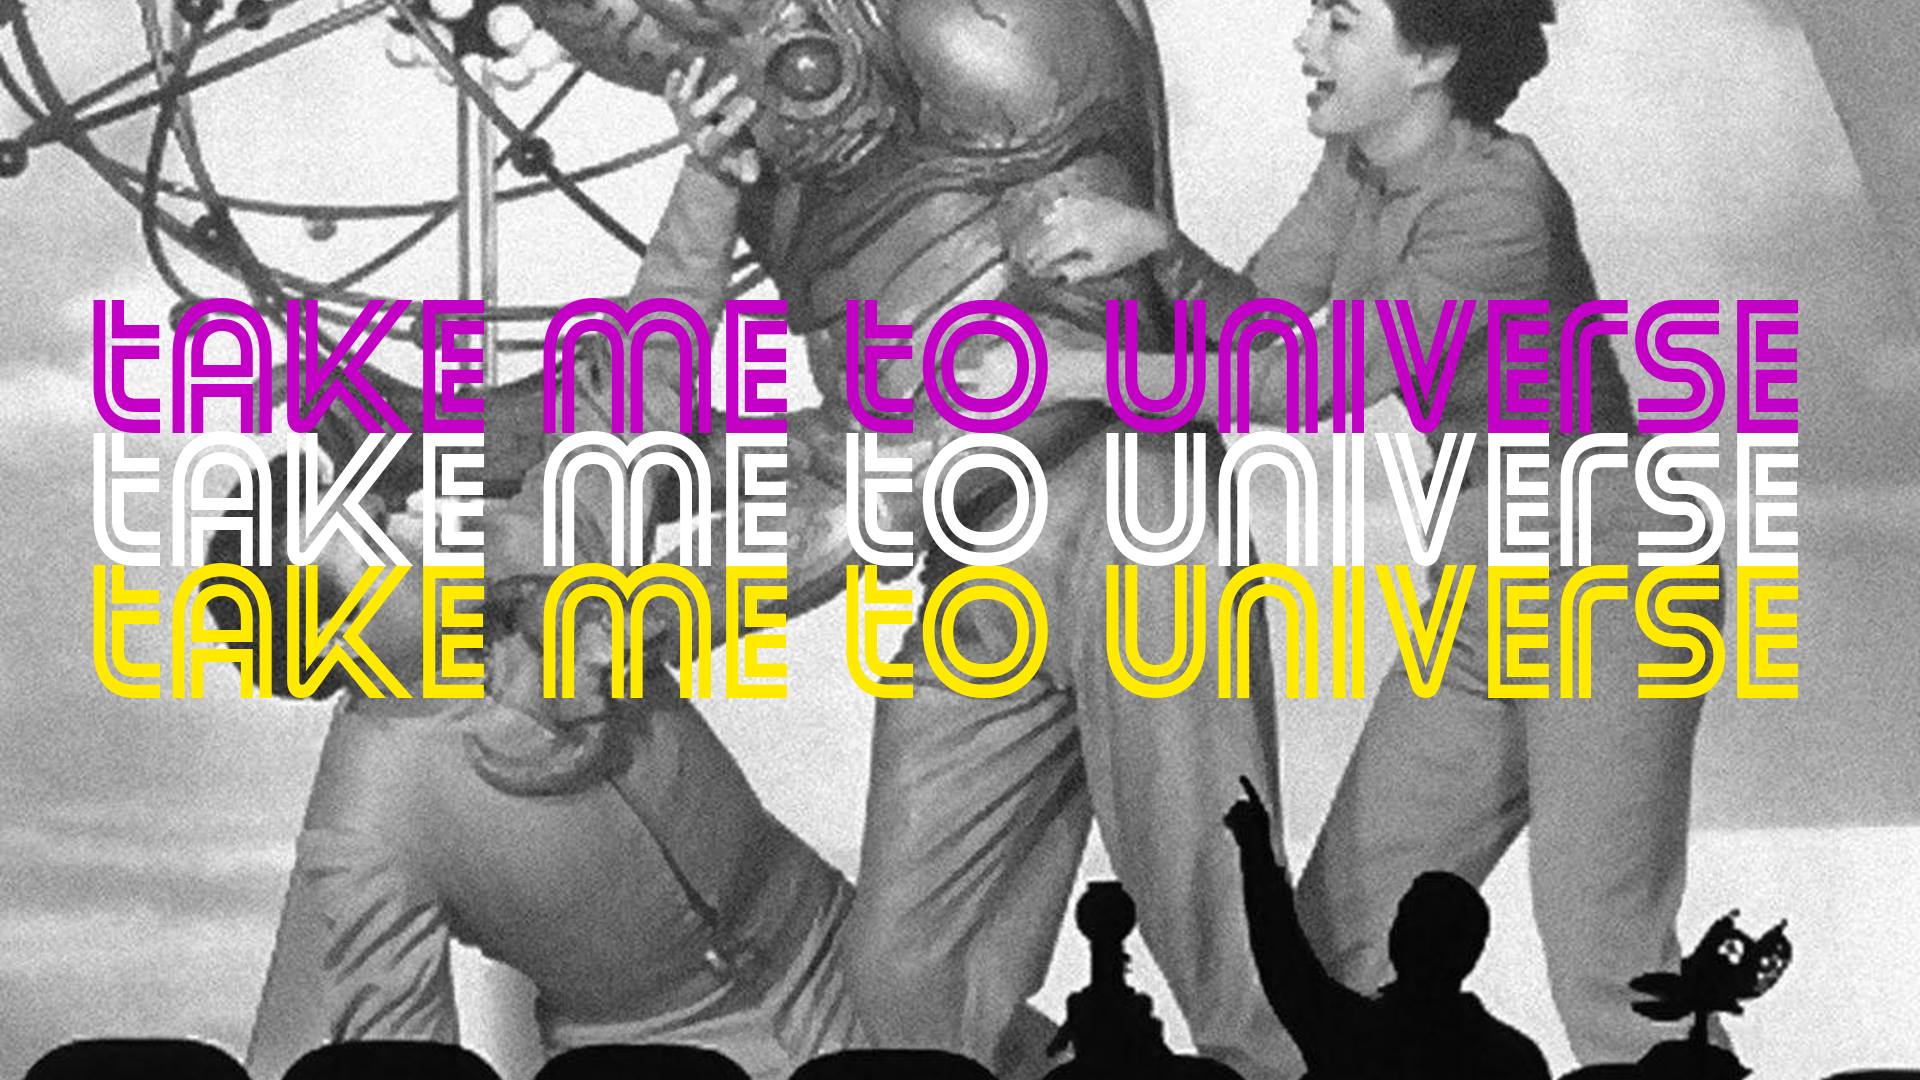 Take me to universe – Silvester im Infoladen